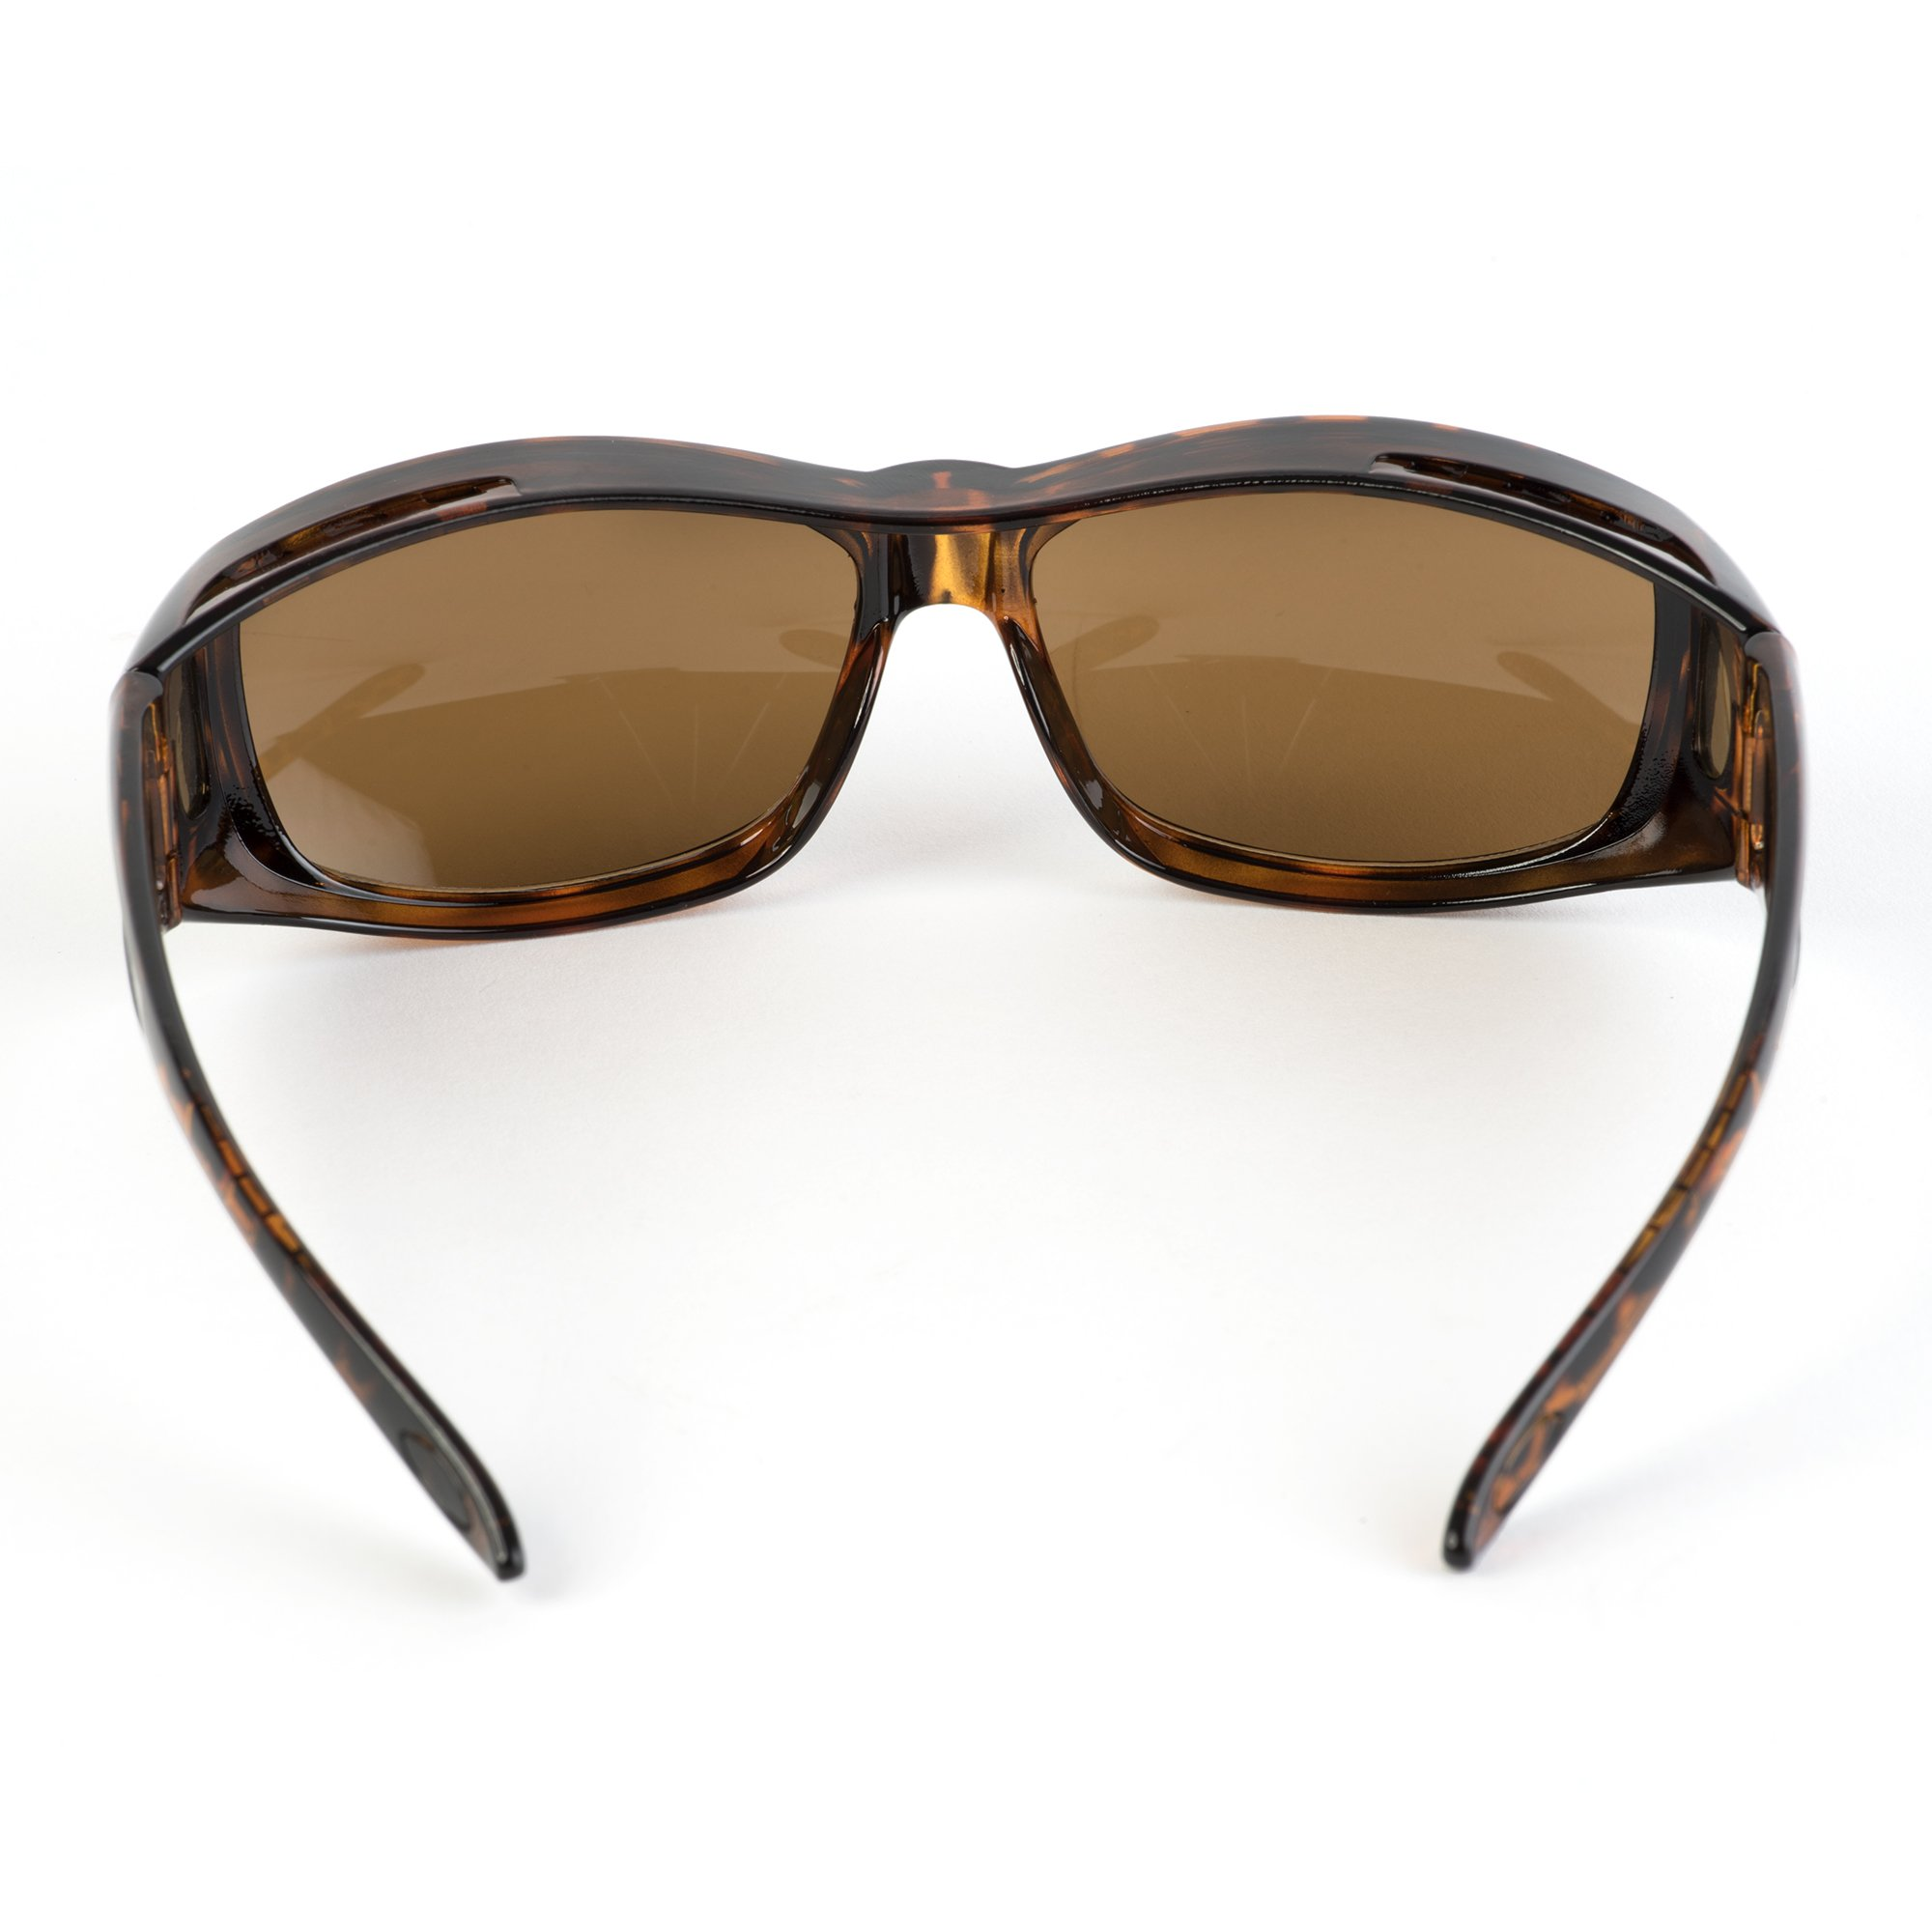 Over Glasses Sunglasses - Fitover Sunglasses with 100% UV Protection - By Pointed Designs (Leopard) by Pointed Designs (Image #5)